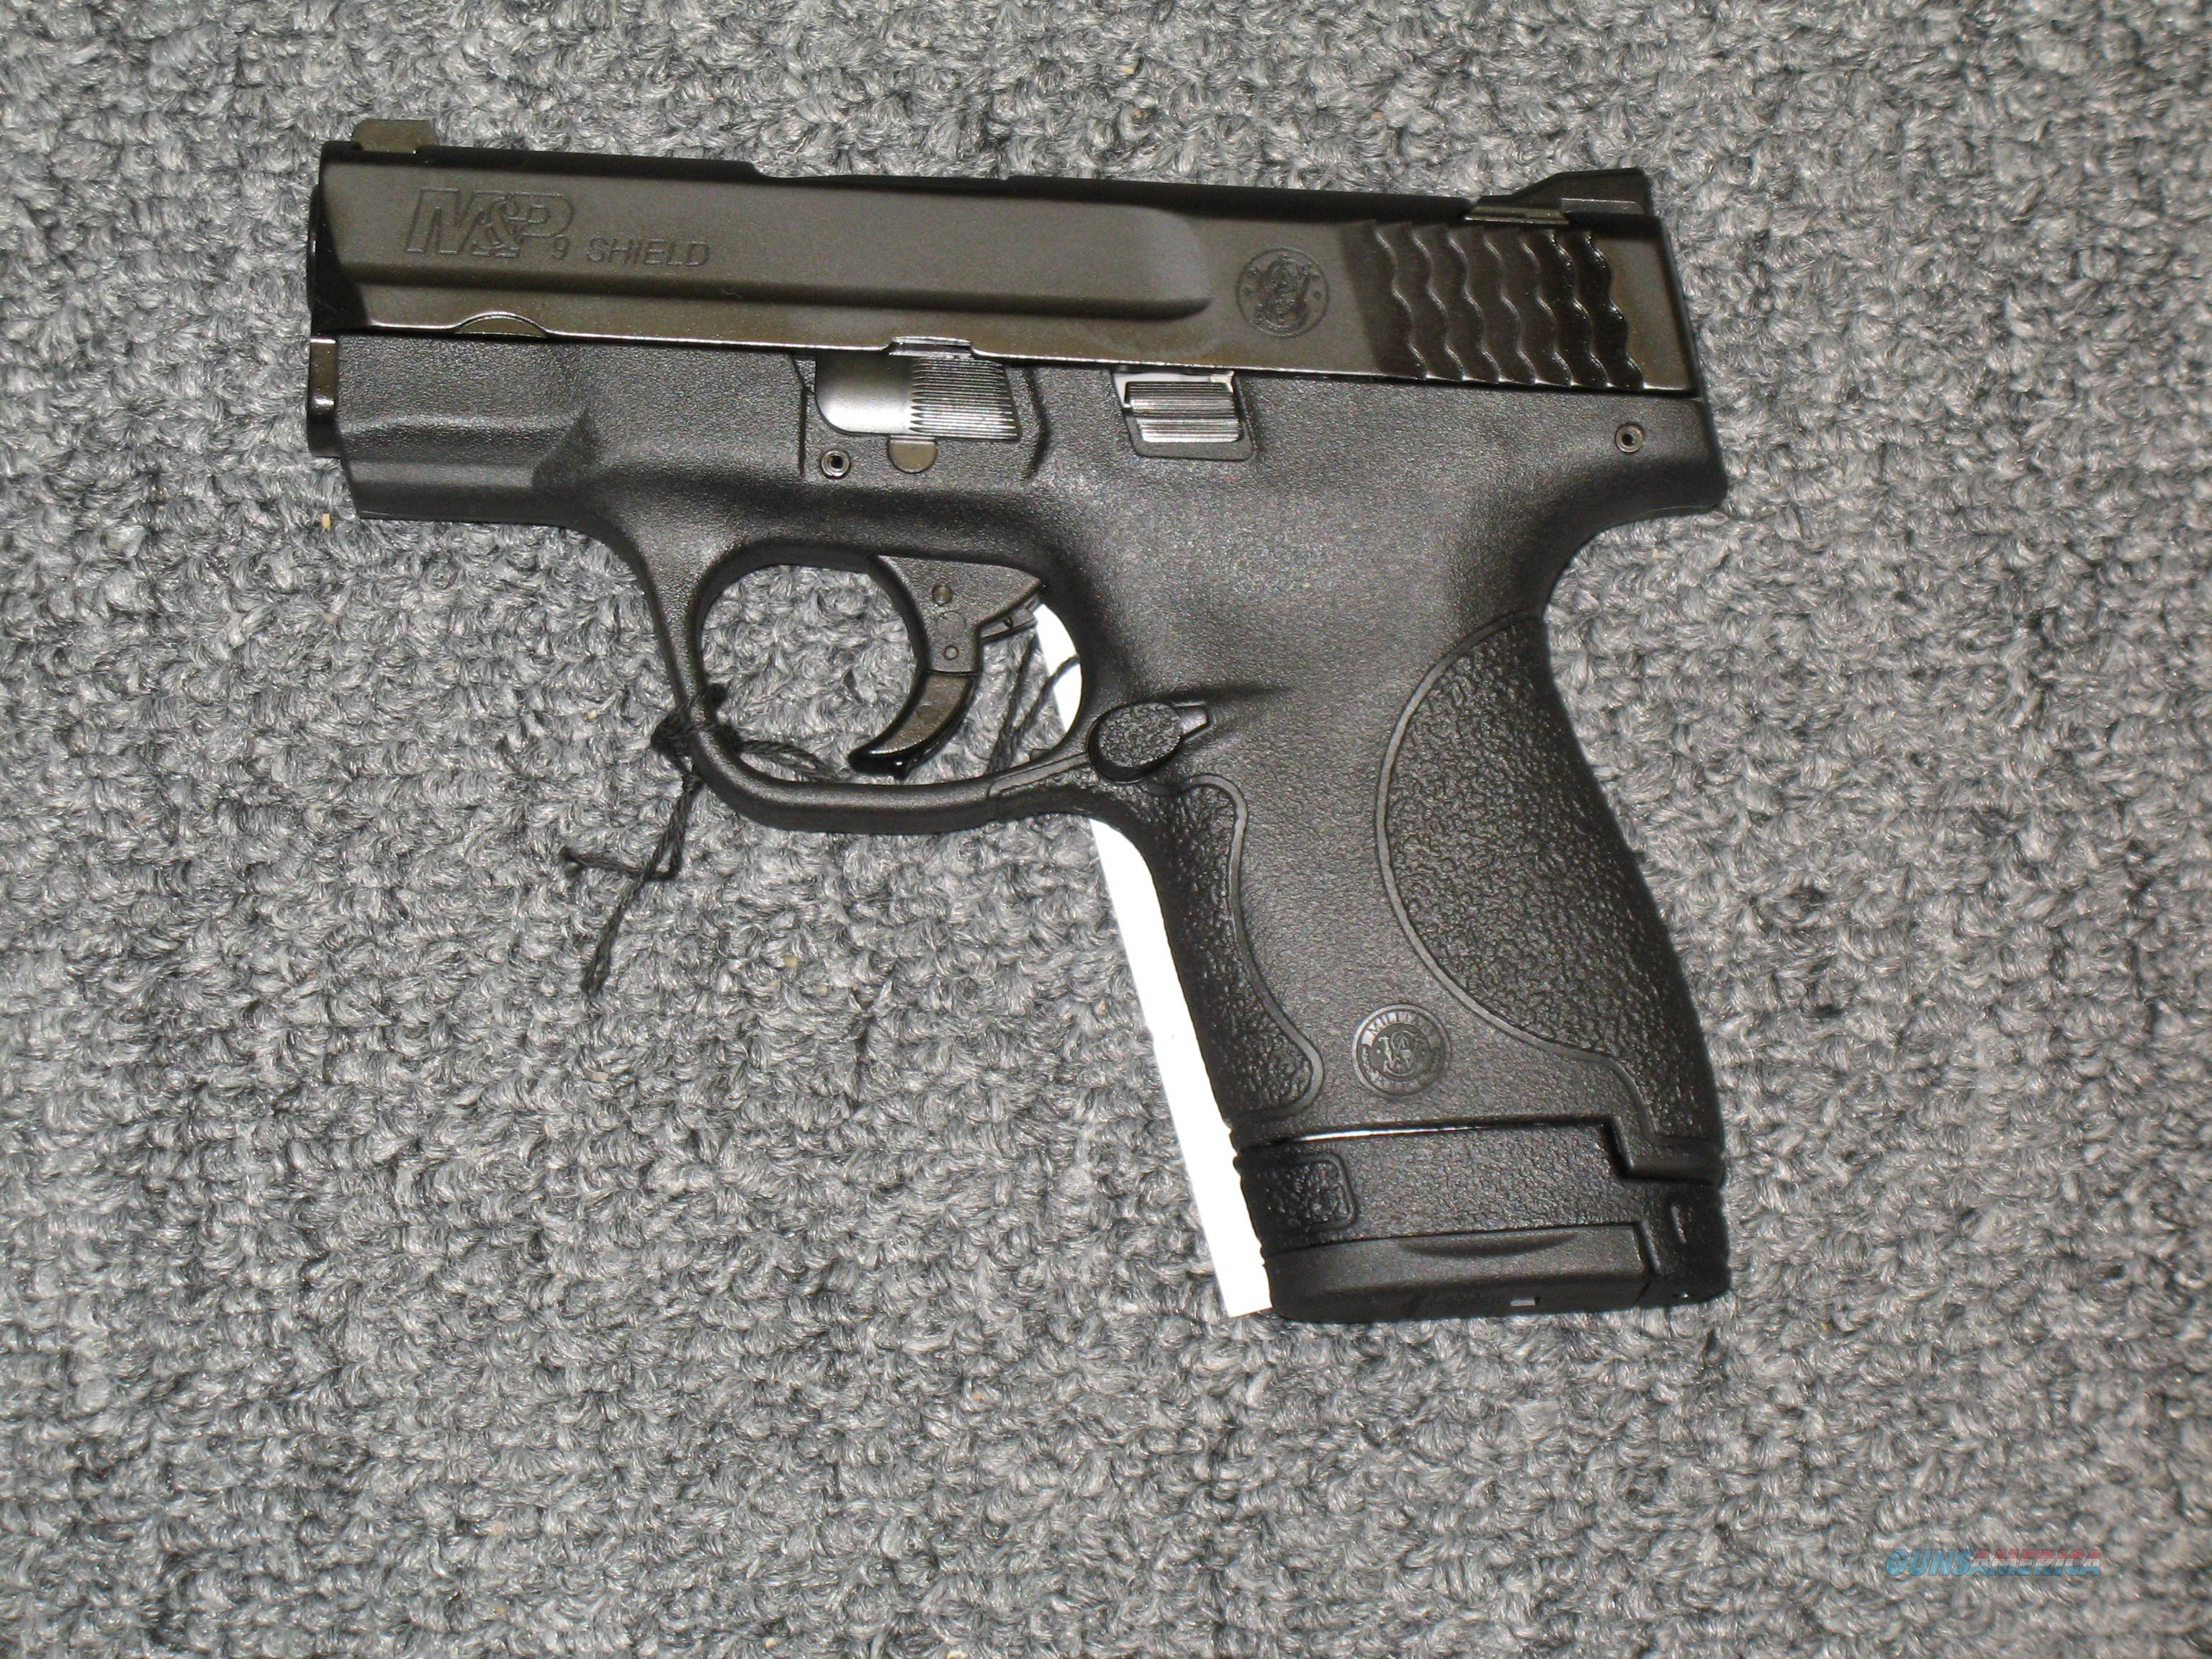 M & P 9 Shield no thumb safety  Guns > Pistols > Smith & Wesson Pistols - Autos > Polymer Frame